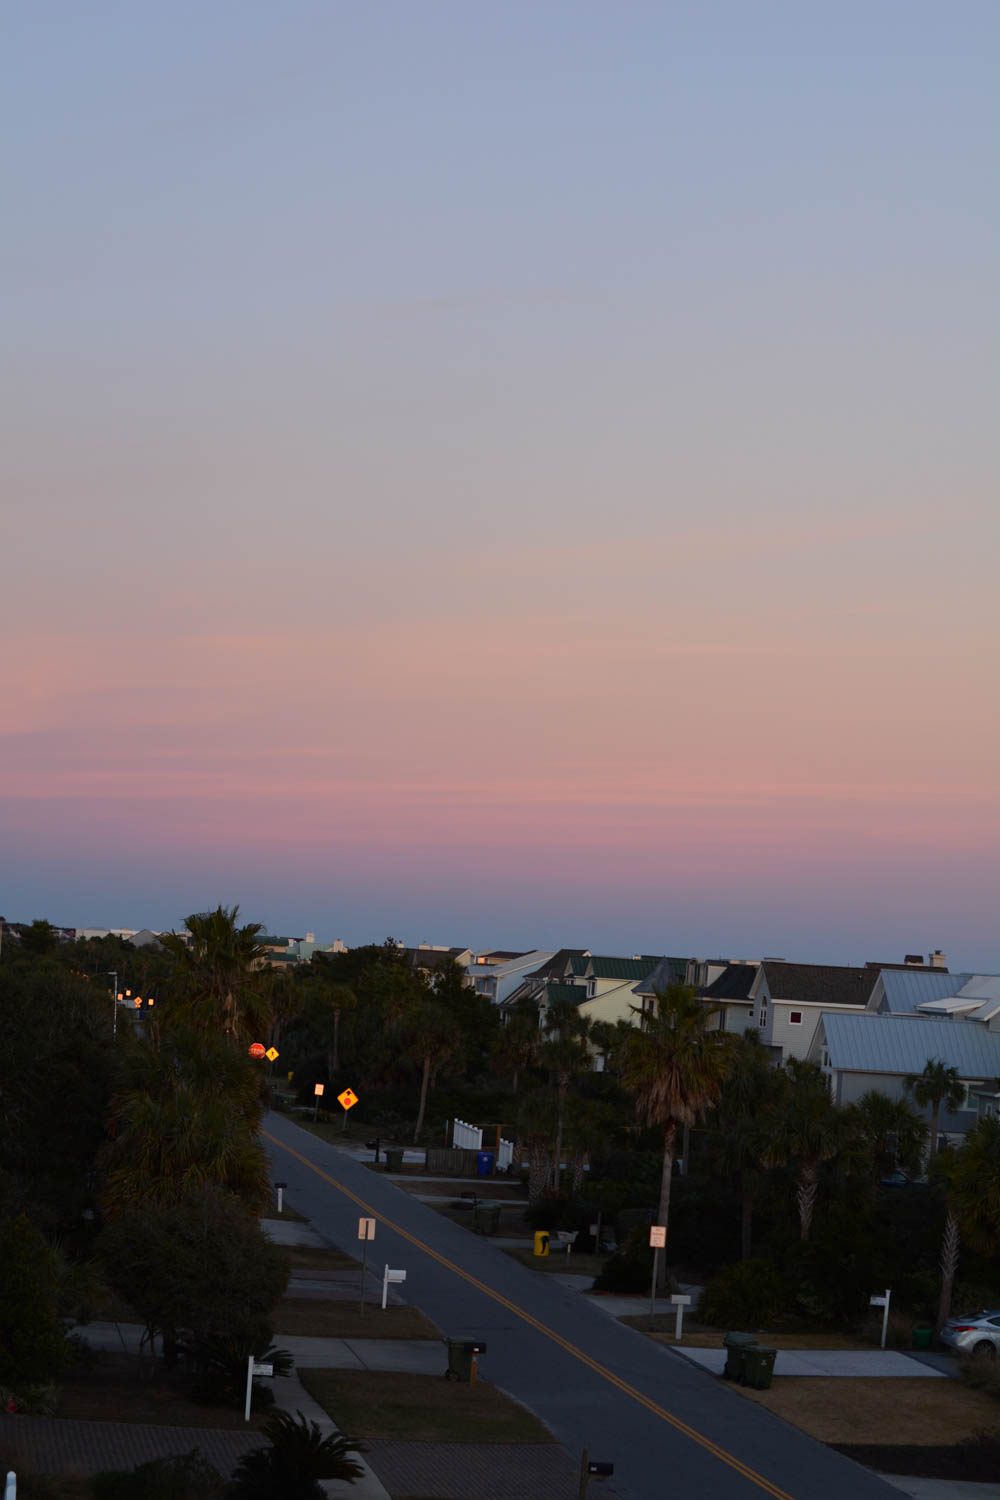 isle-of-palms-charleston-sunset-1.jpg